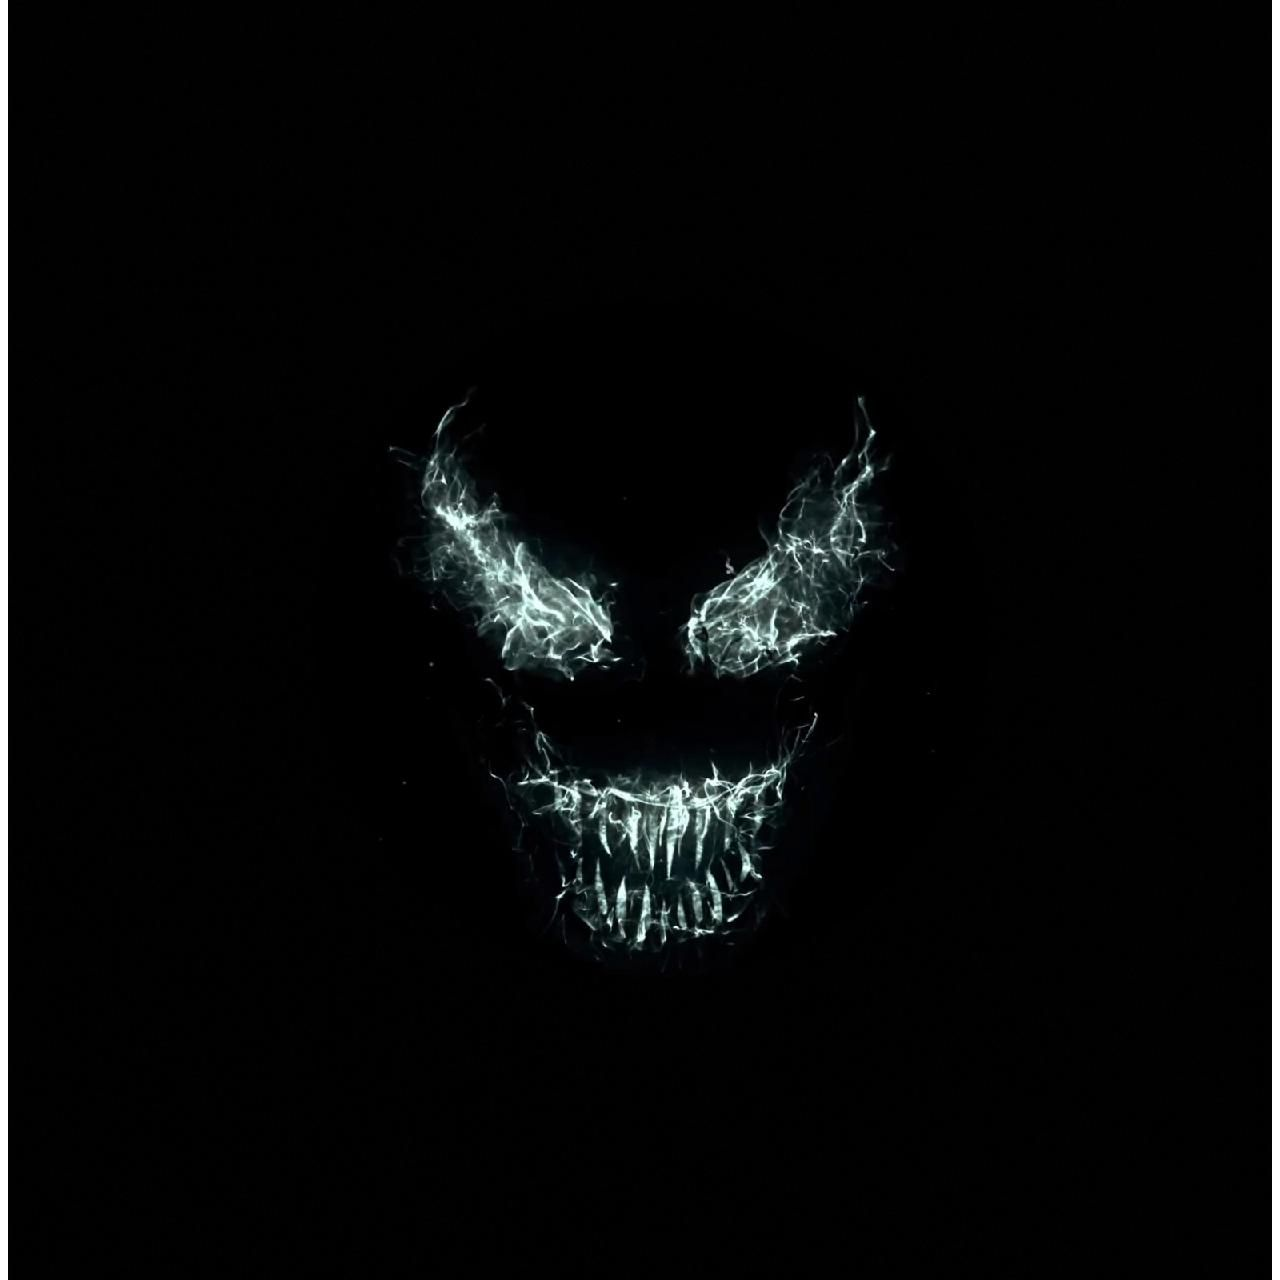 Download Venom Wallpaper by sulyokviktor 73 Free on